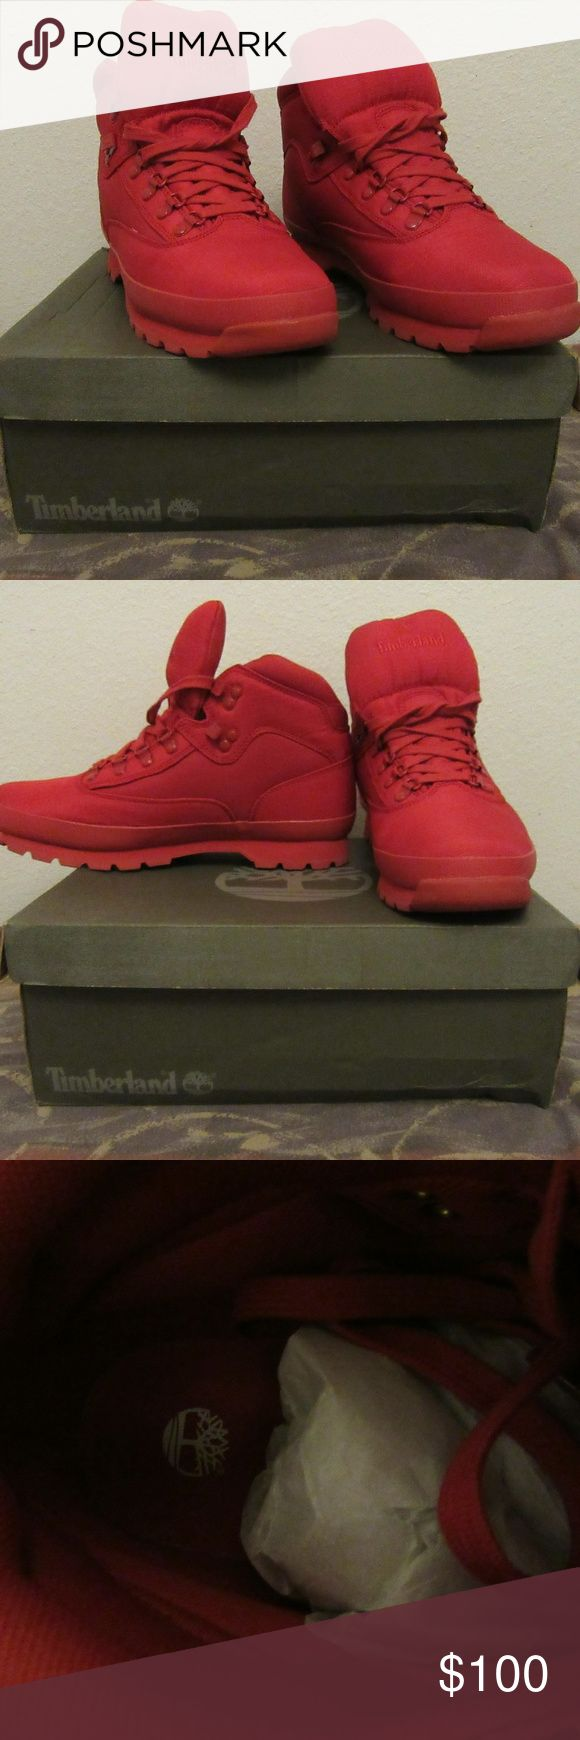 Timberland Euro Hiker Rip Boots Size 13 Mono Red excellent shape: literally been worn a couple times  Timberland Euro Hiker Rip Boots Size 13 Mono Red Release Model A1507 Timberland Shoes Boots